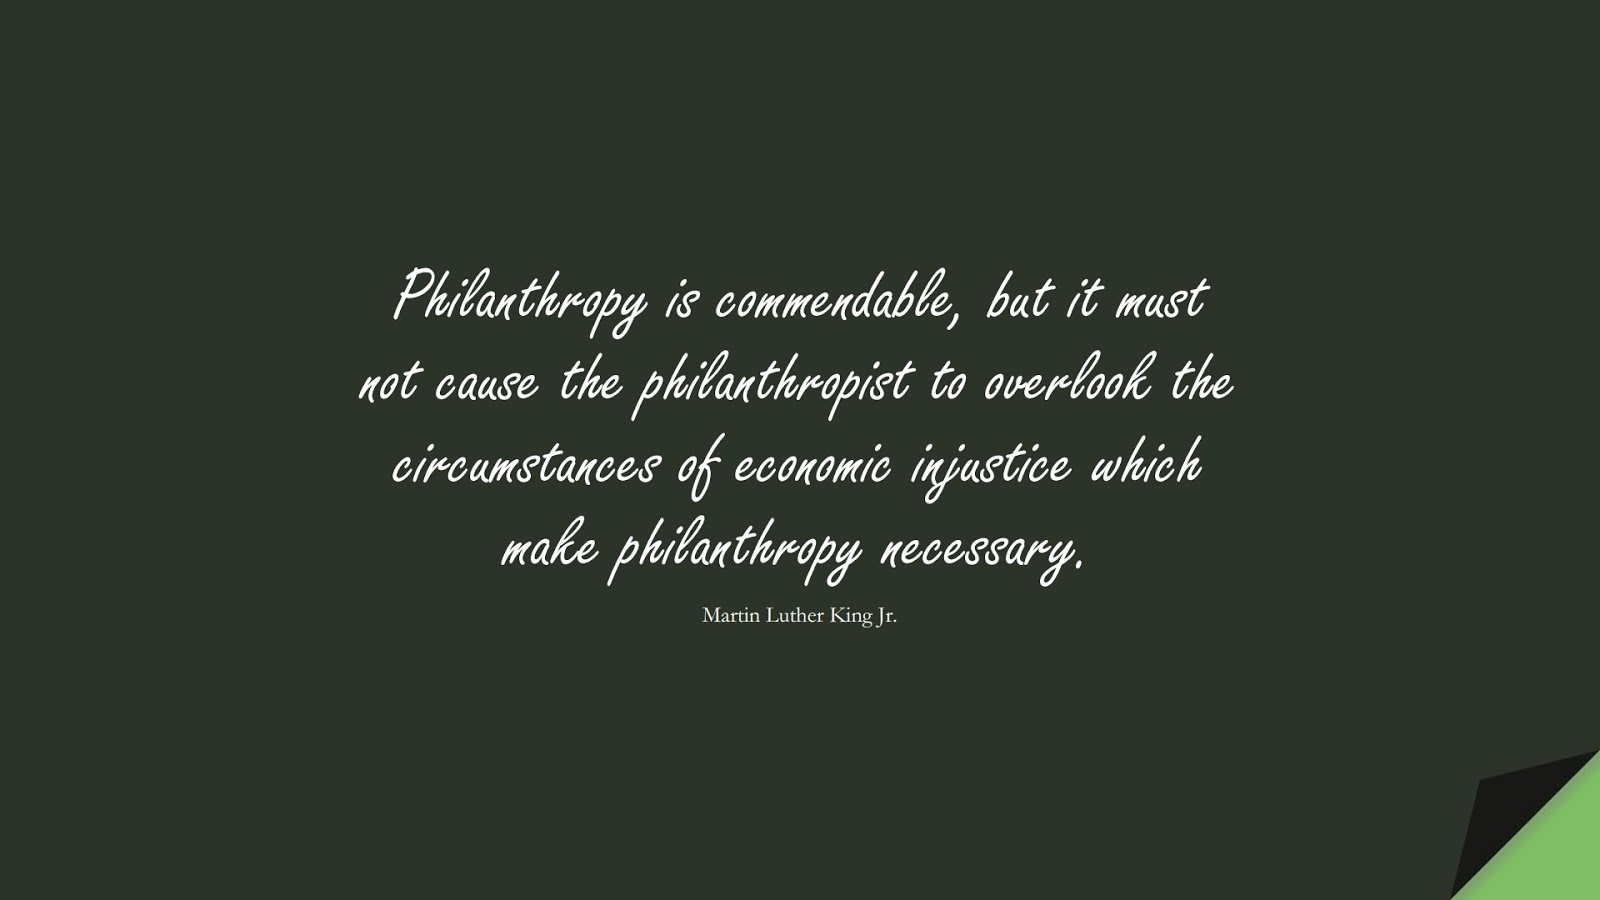 Philanthropy is commendable, but it must not cause the philanthropist to overlook the circumstances of economic injustice which make philanthropy necessary. (Martin Luther King Jr.);  #MartinLutherKingJrQuotes